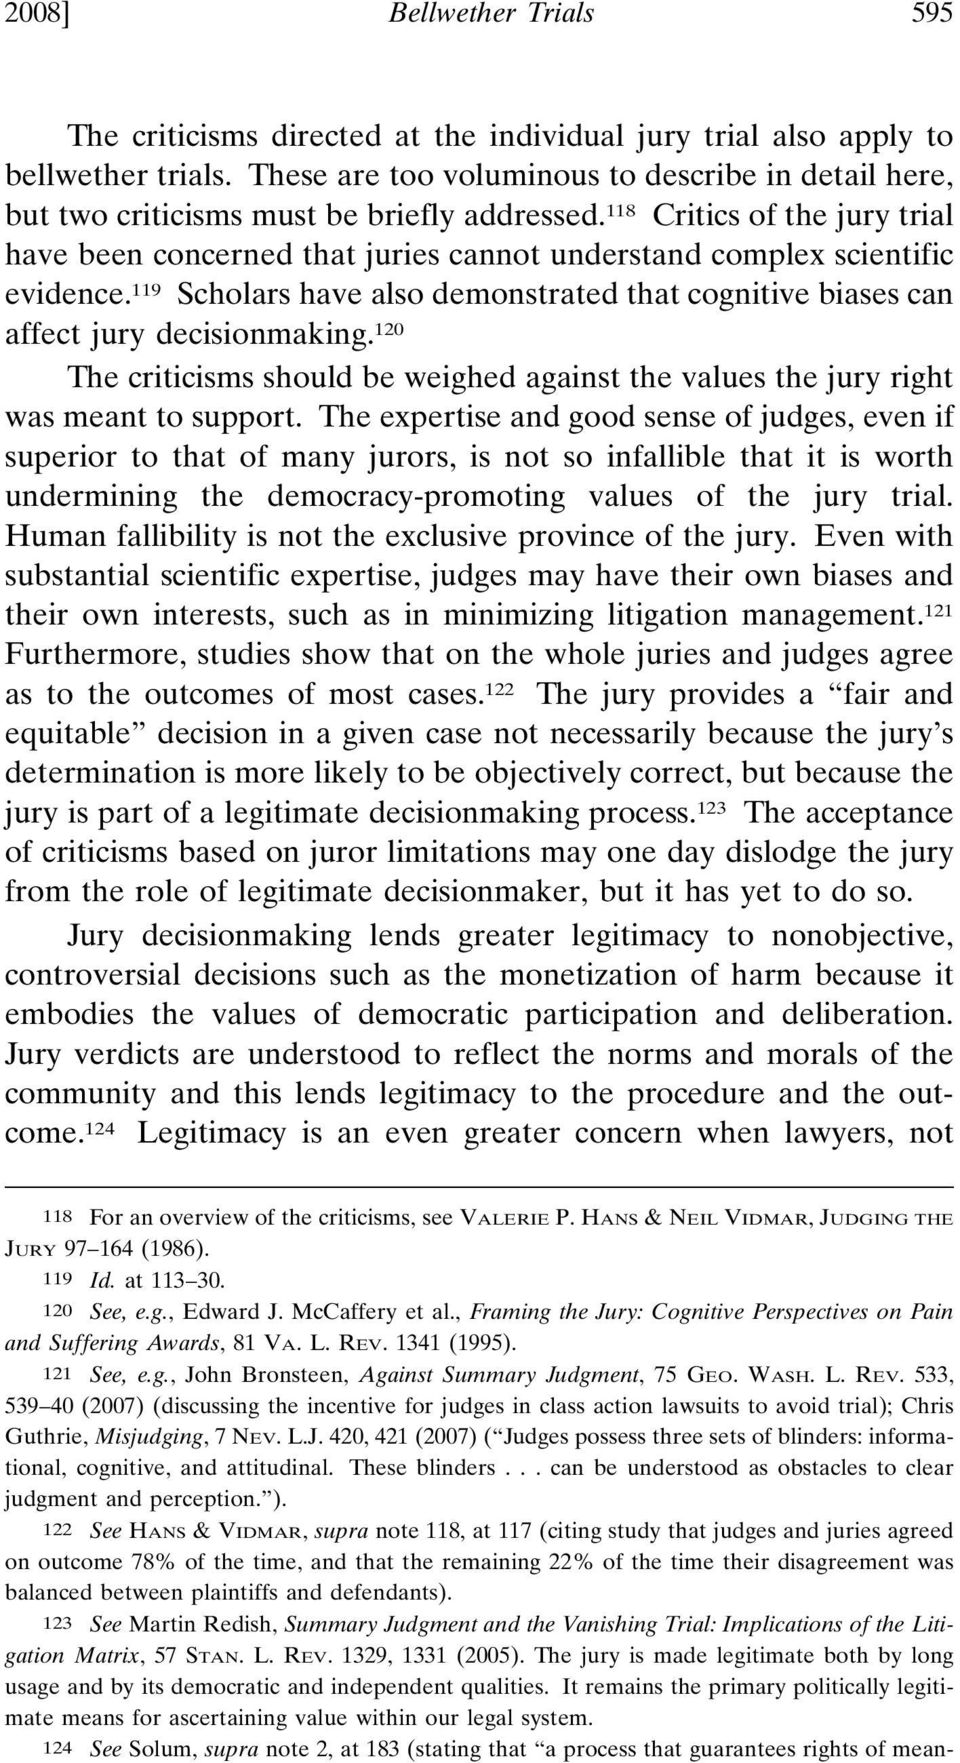 118 Critics of the jury trial have been concerned that juries cannot understand complex scientific evidence. 119 Scholars have also demonstrated that cognitive biases can affect jury decisionmaking.